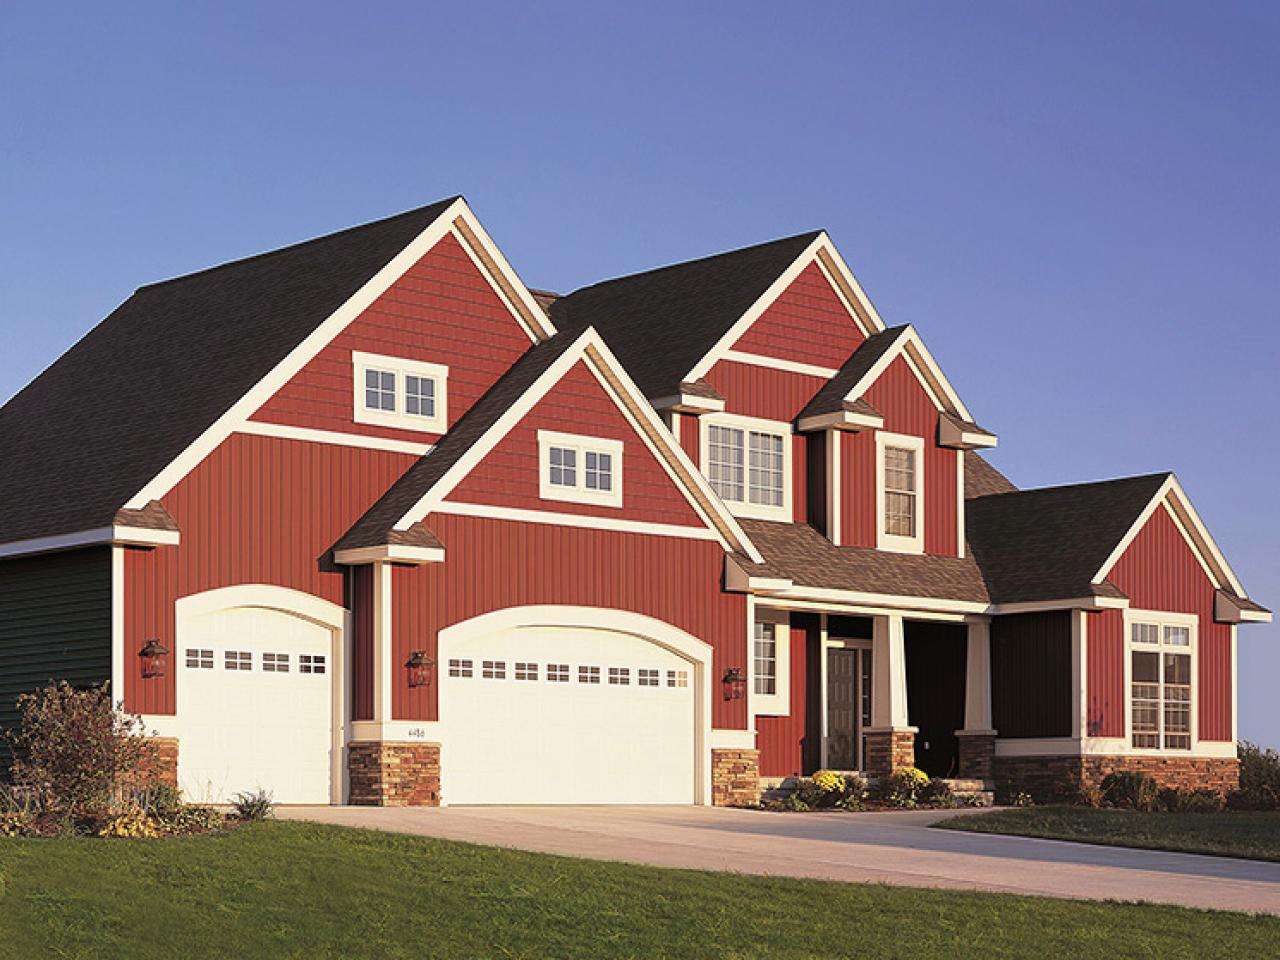 Ci ply gem exterior buying guide red white framhouse s4x3